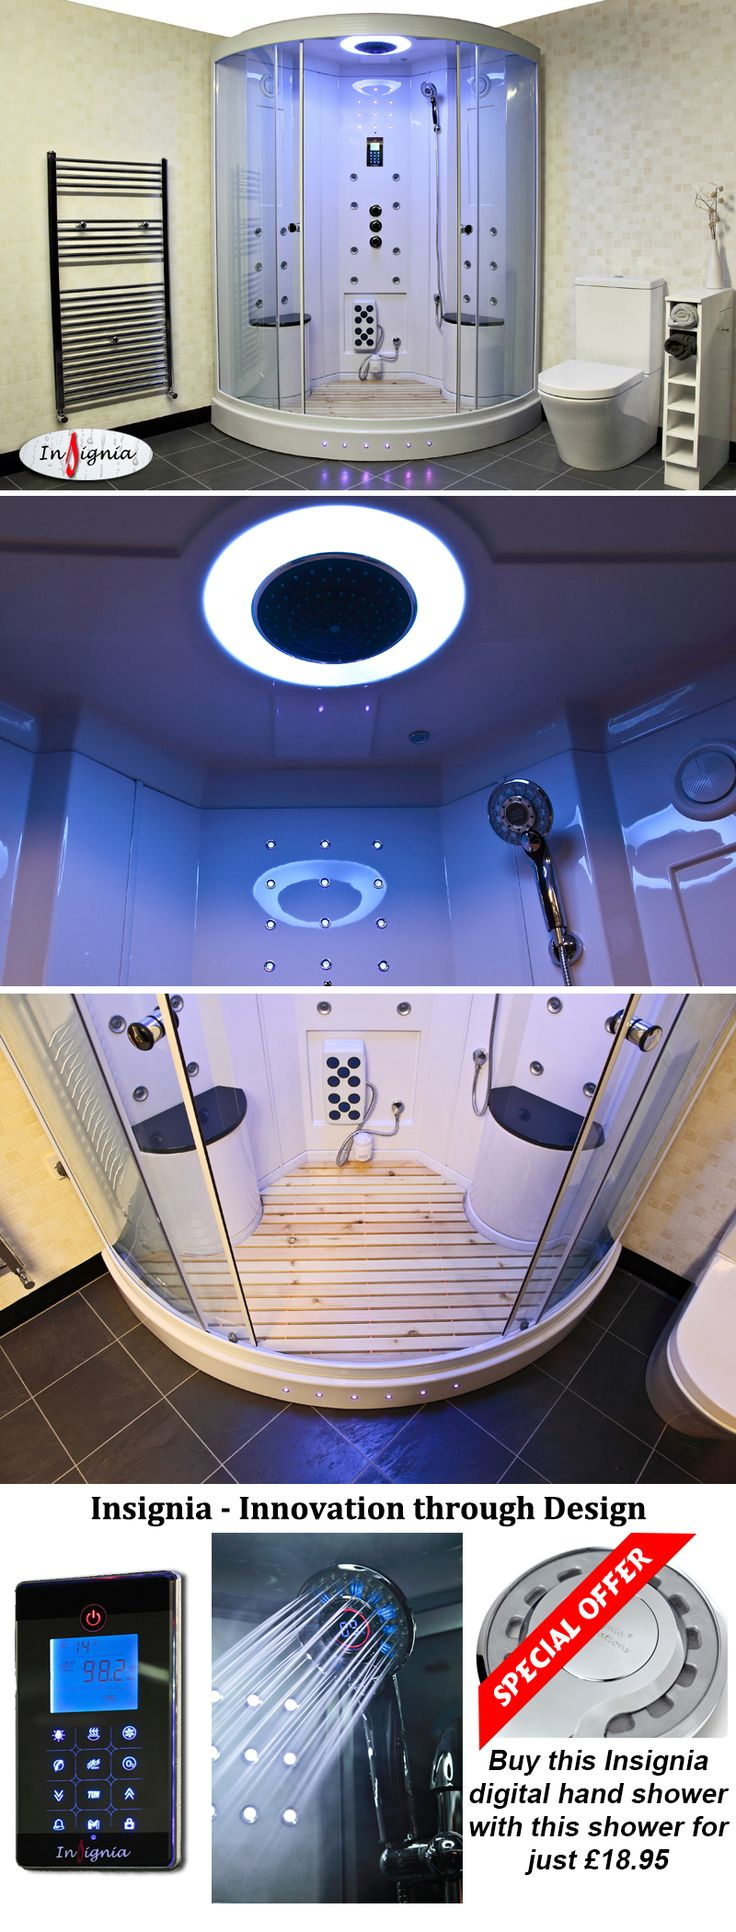 The 22 best Steam Showers images on Pinterest | Steam showers ...